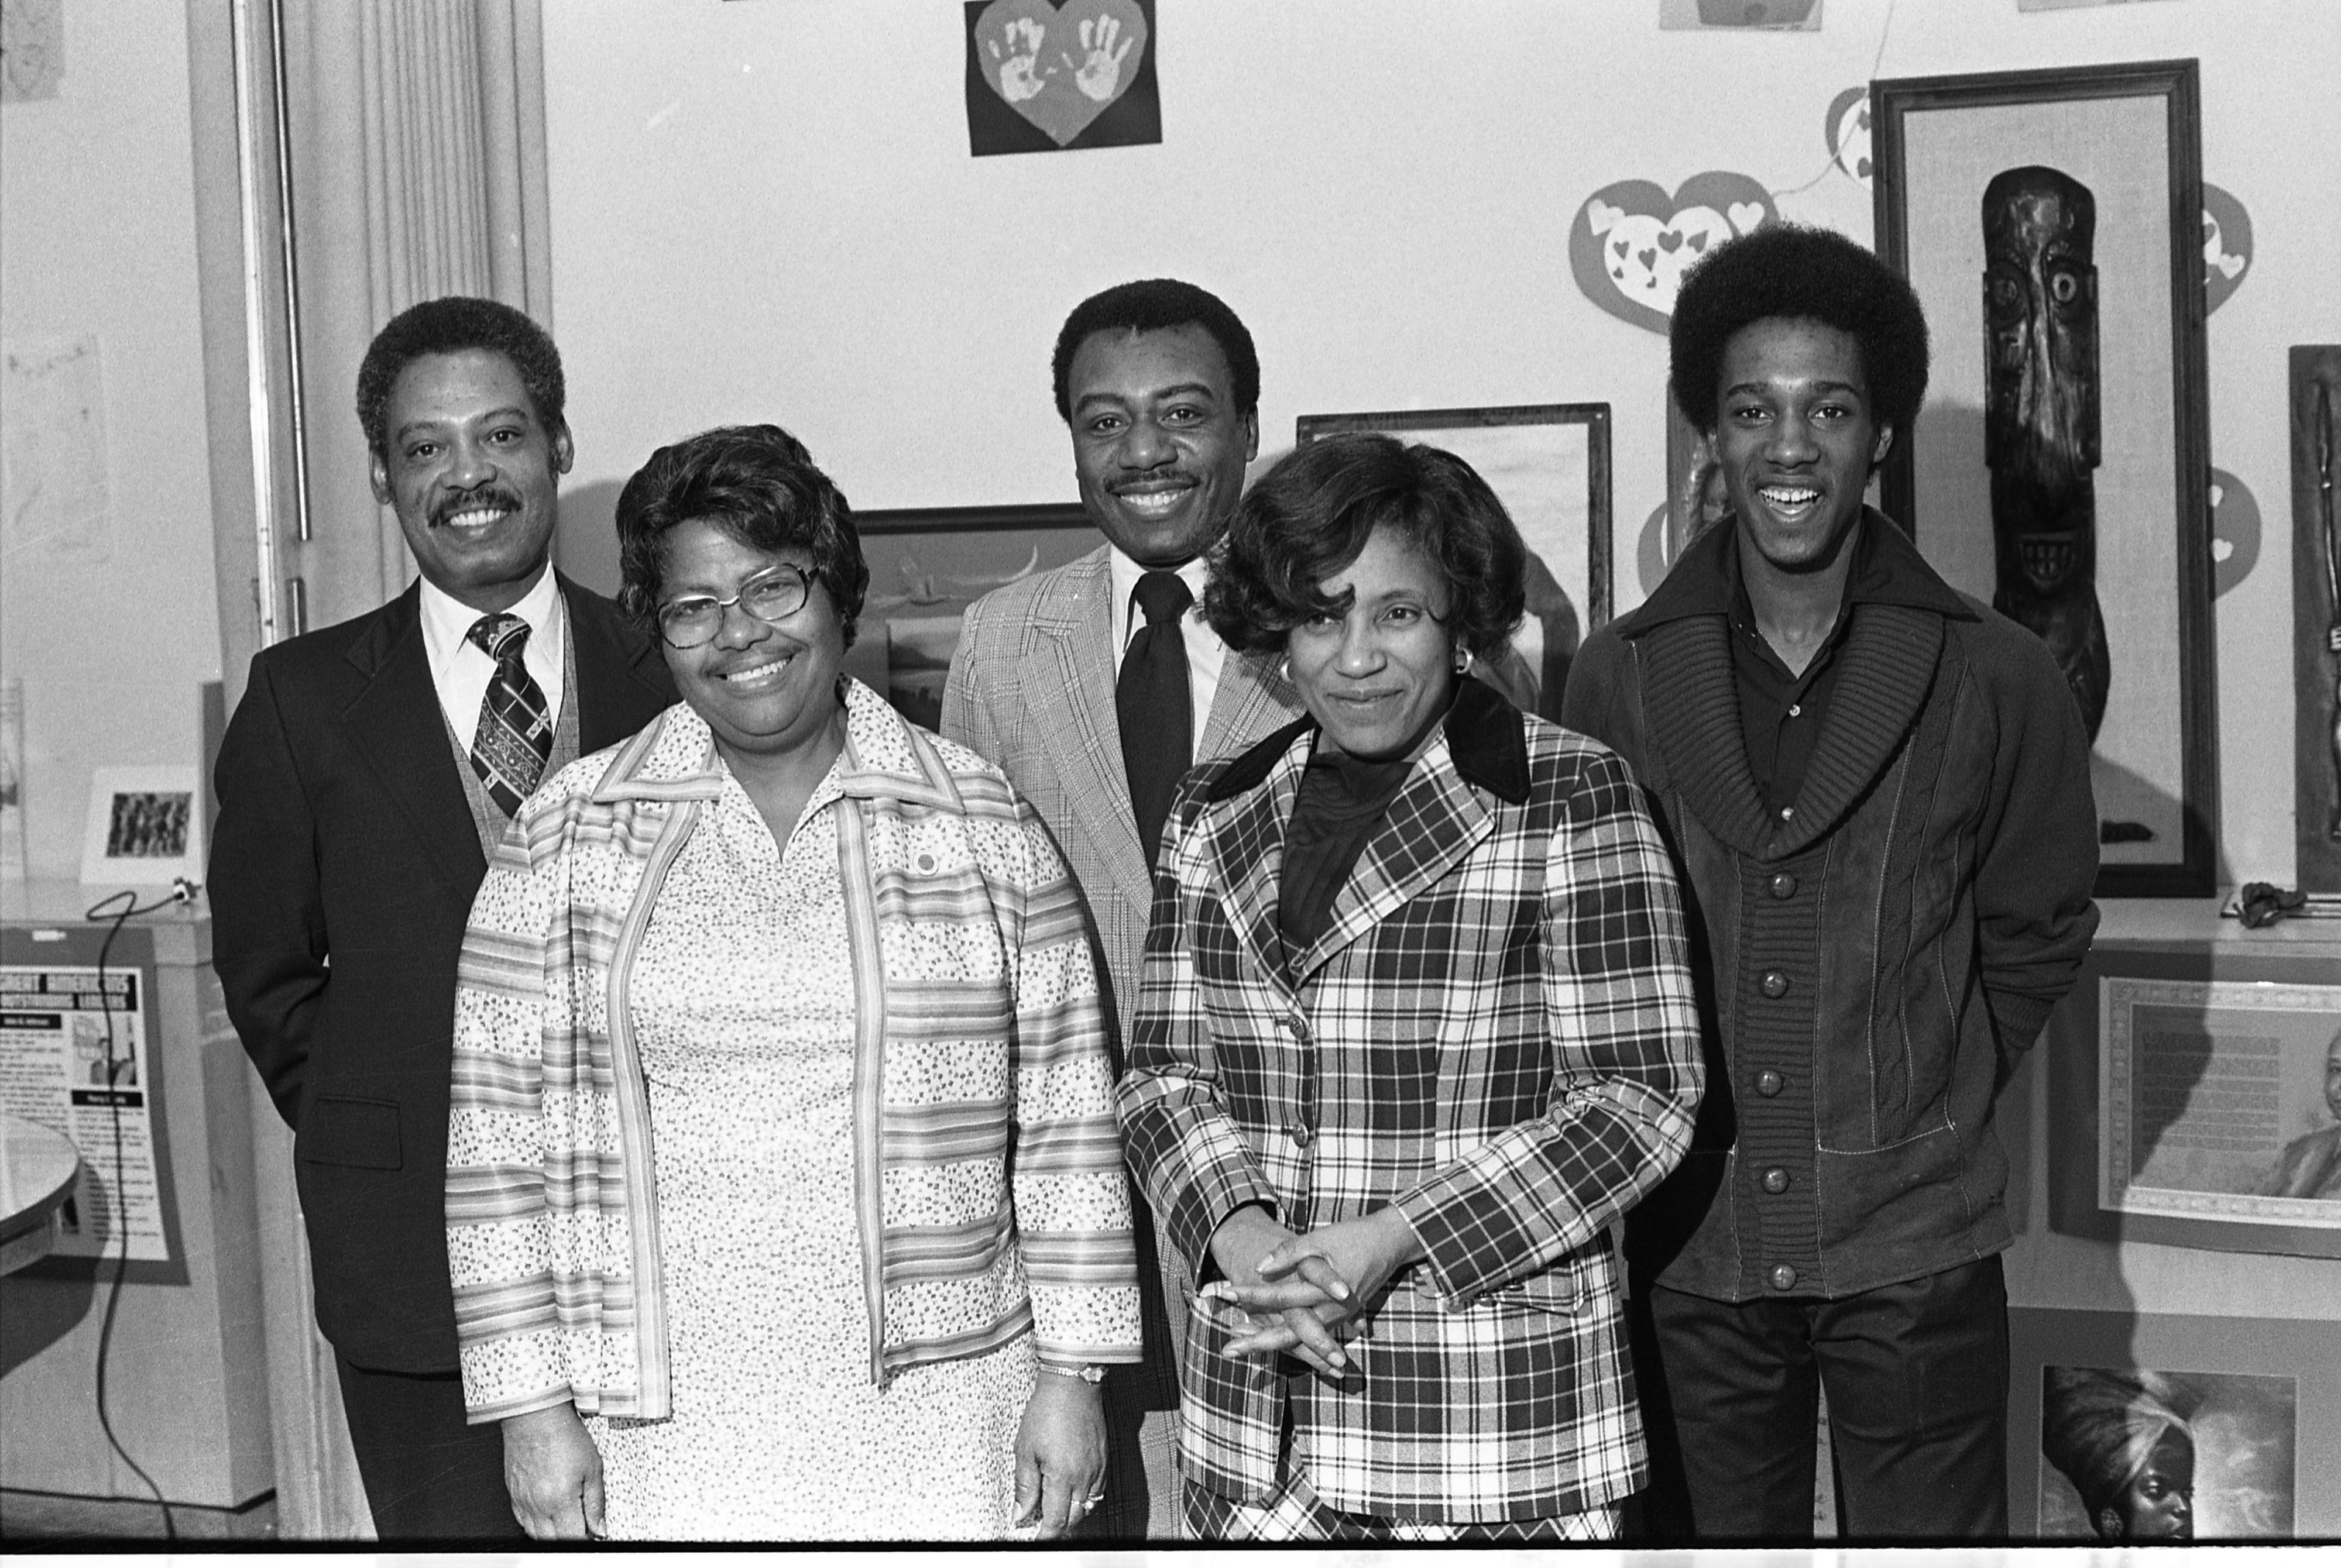 Community Service Award Winners, February 15, 1977 image